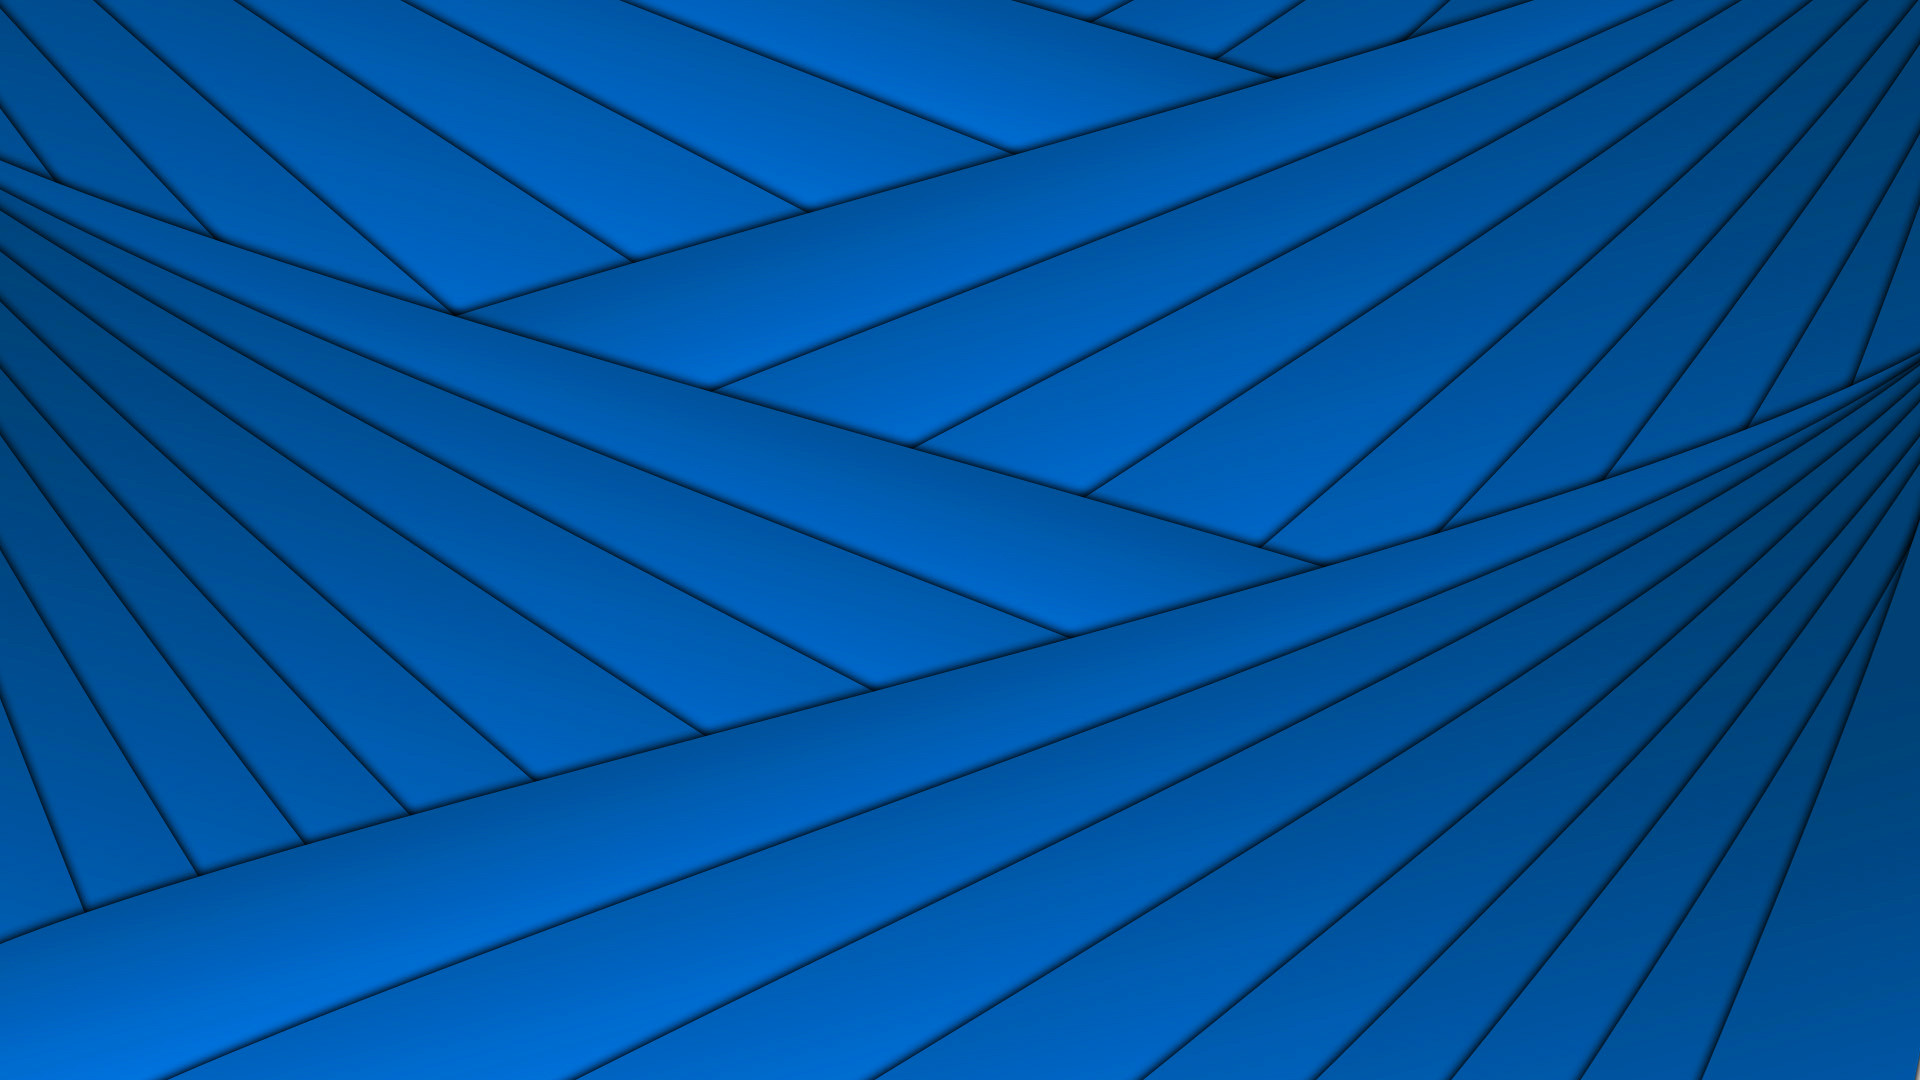 Res: 1920x1080, texture-blue-lines-vector-rays-background-hd-wallpaper